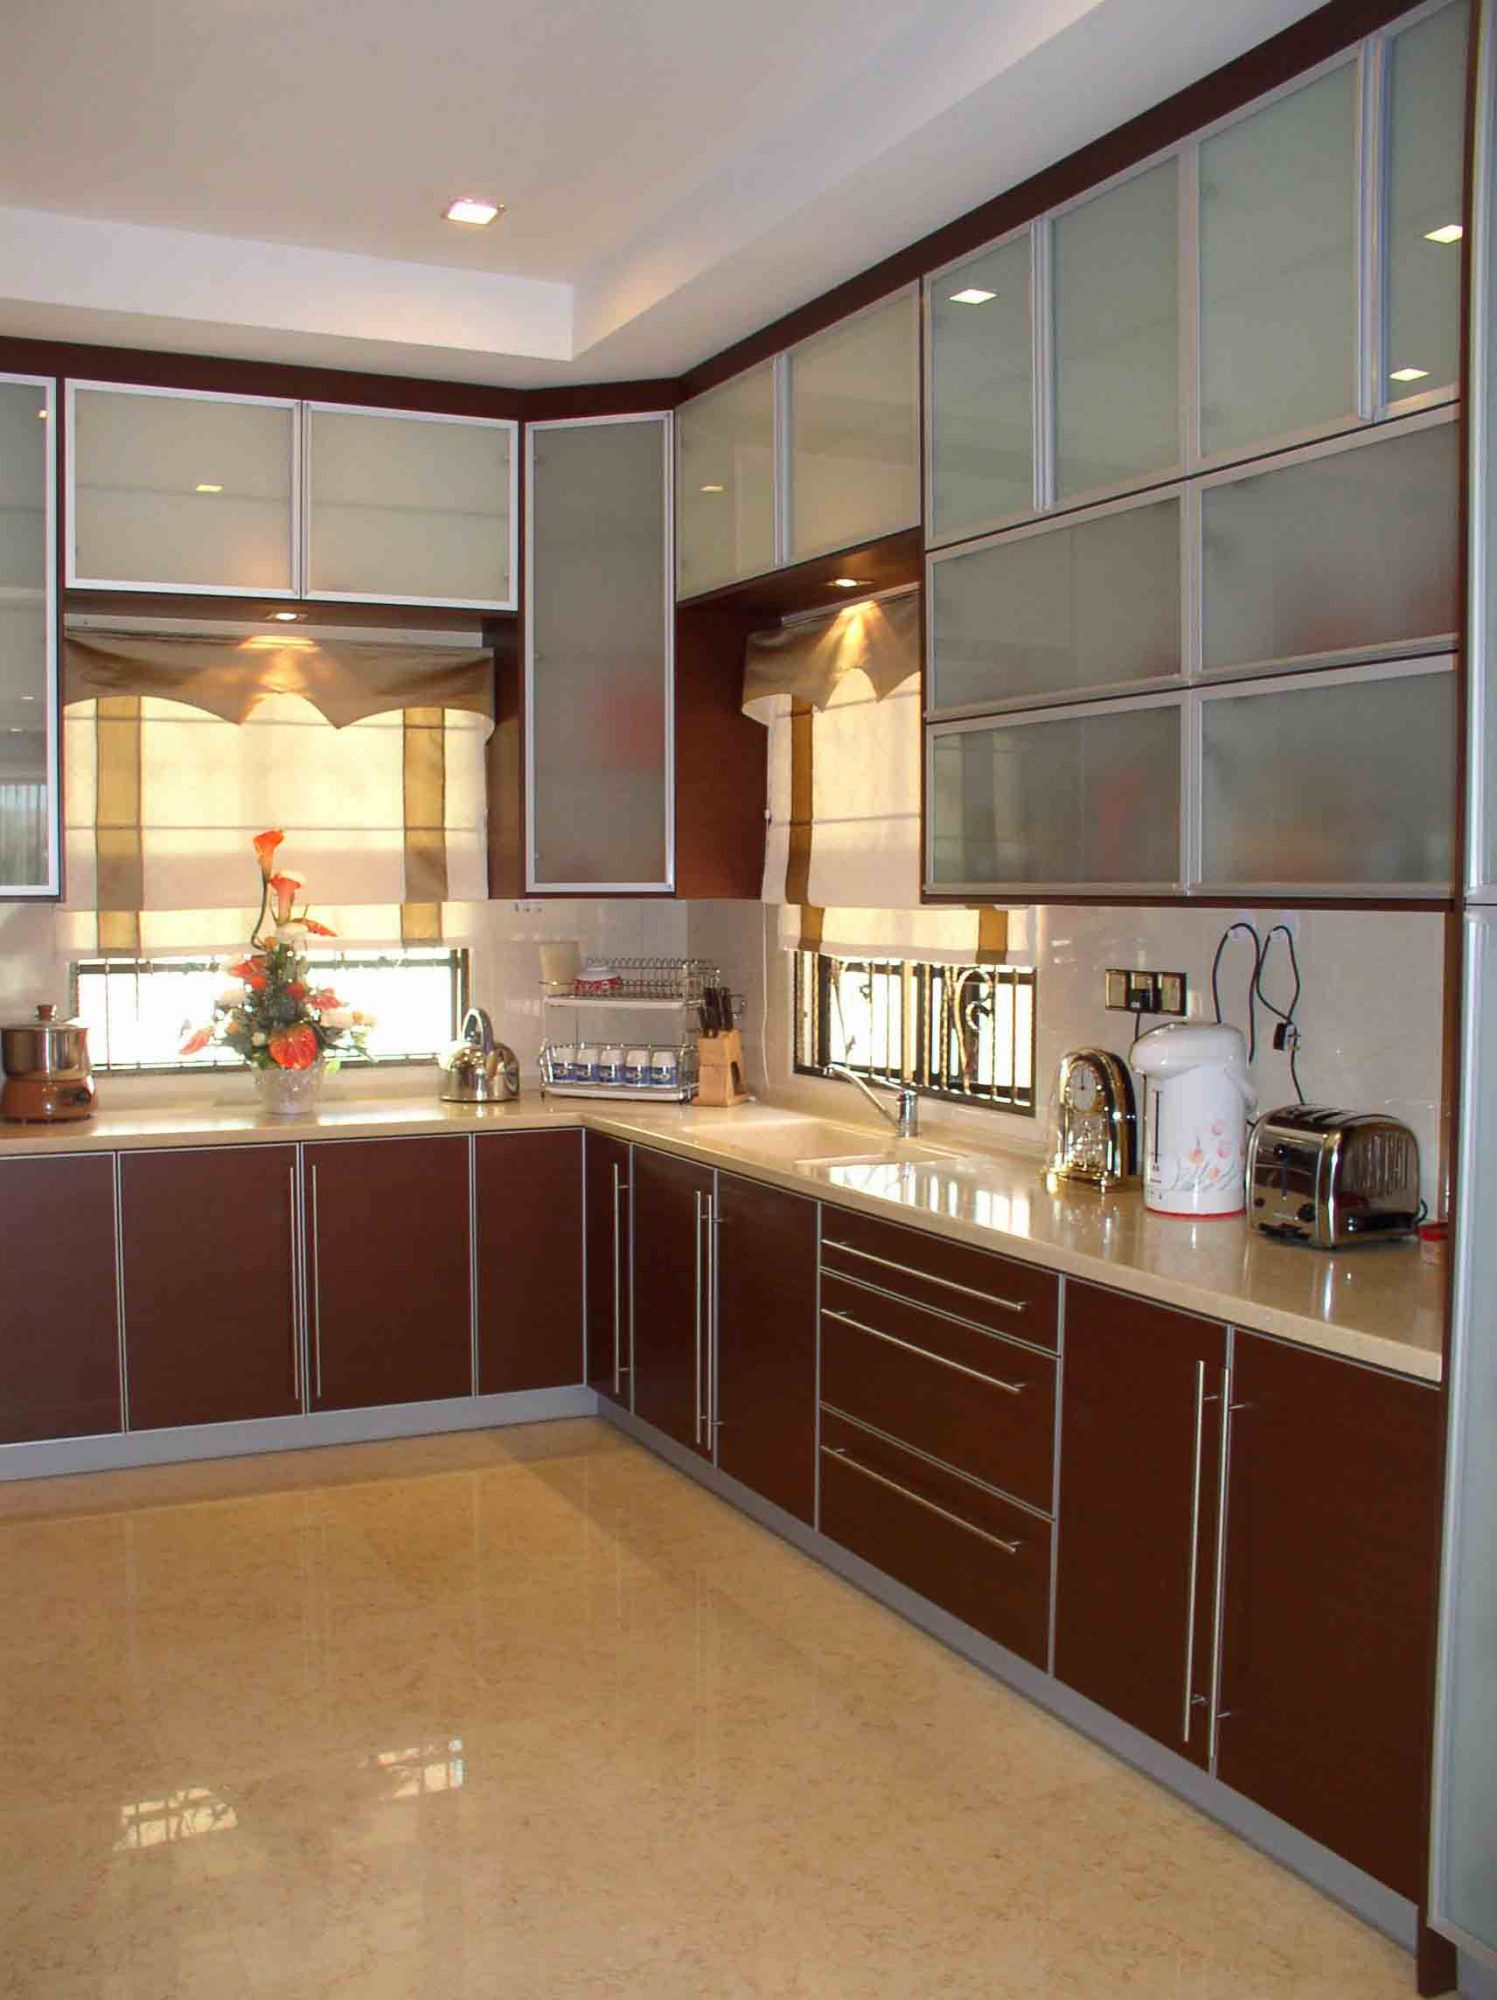 designer kitchen cabinet 20 popular kitchen cabinet designs in malaysia recommend 365